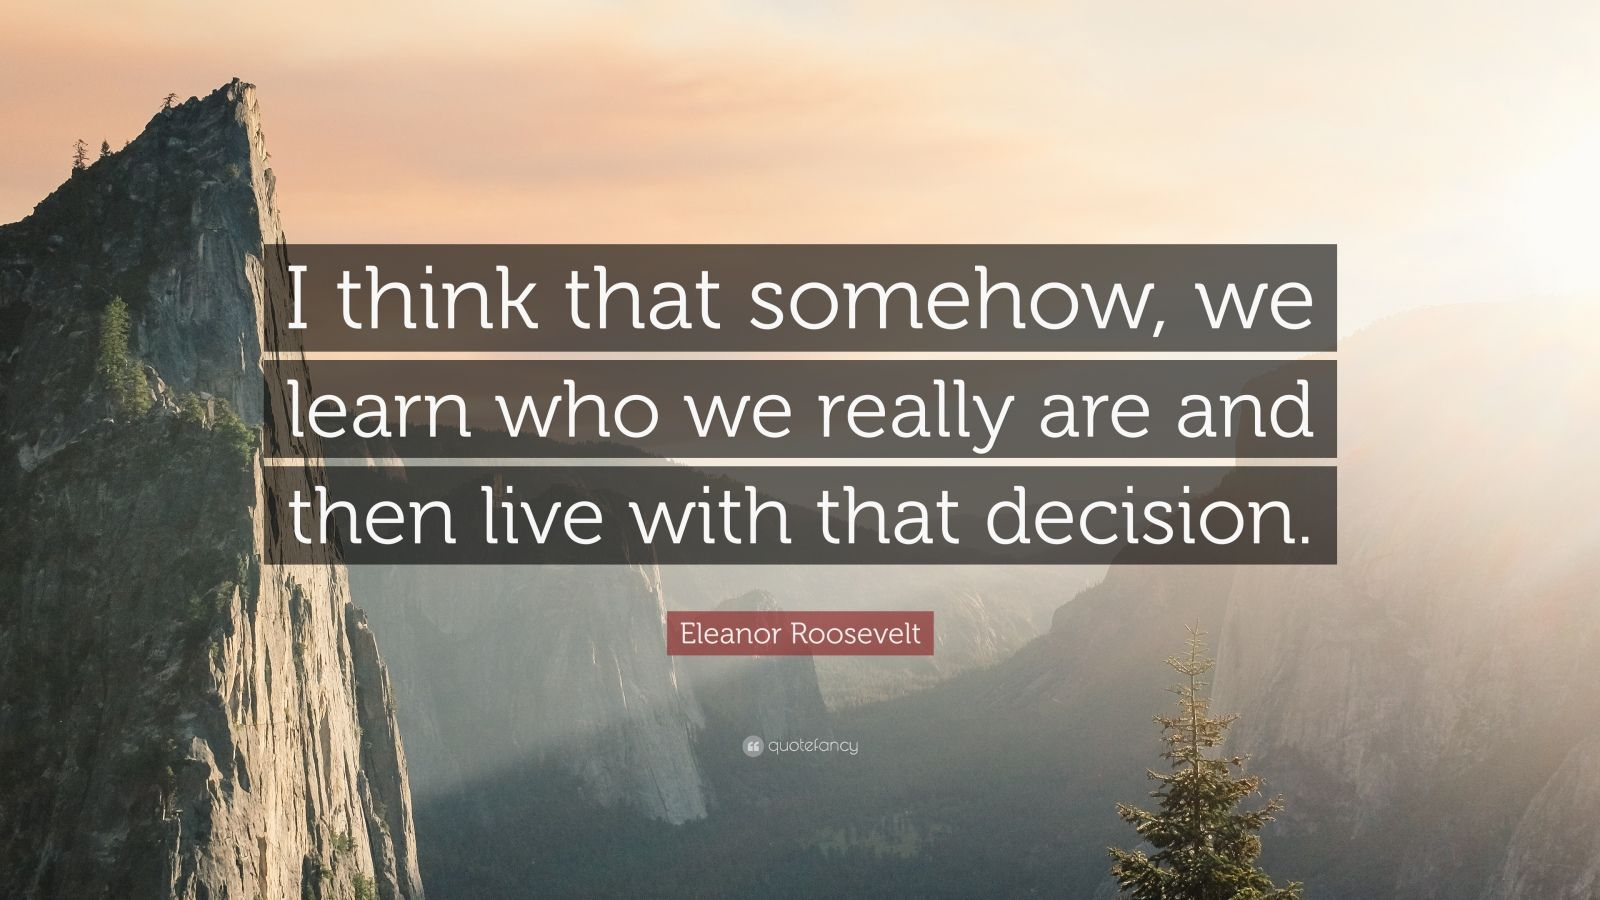 """Eleanor Roosevelt Quote: """"I think that somehow, we learn who we really are and then live with that decision."""""""